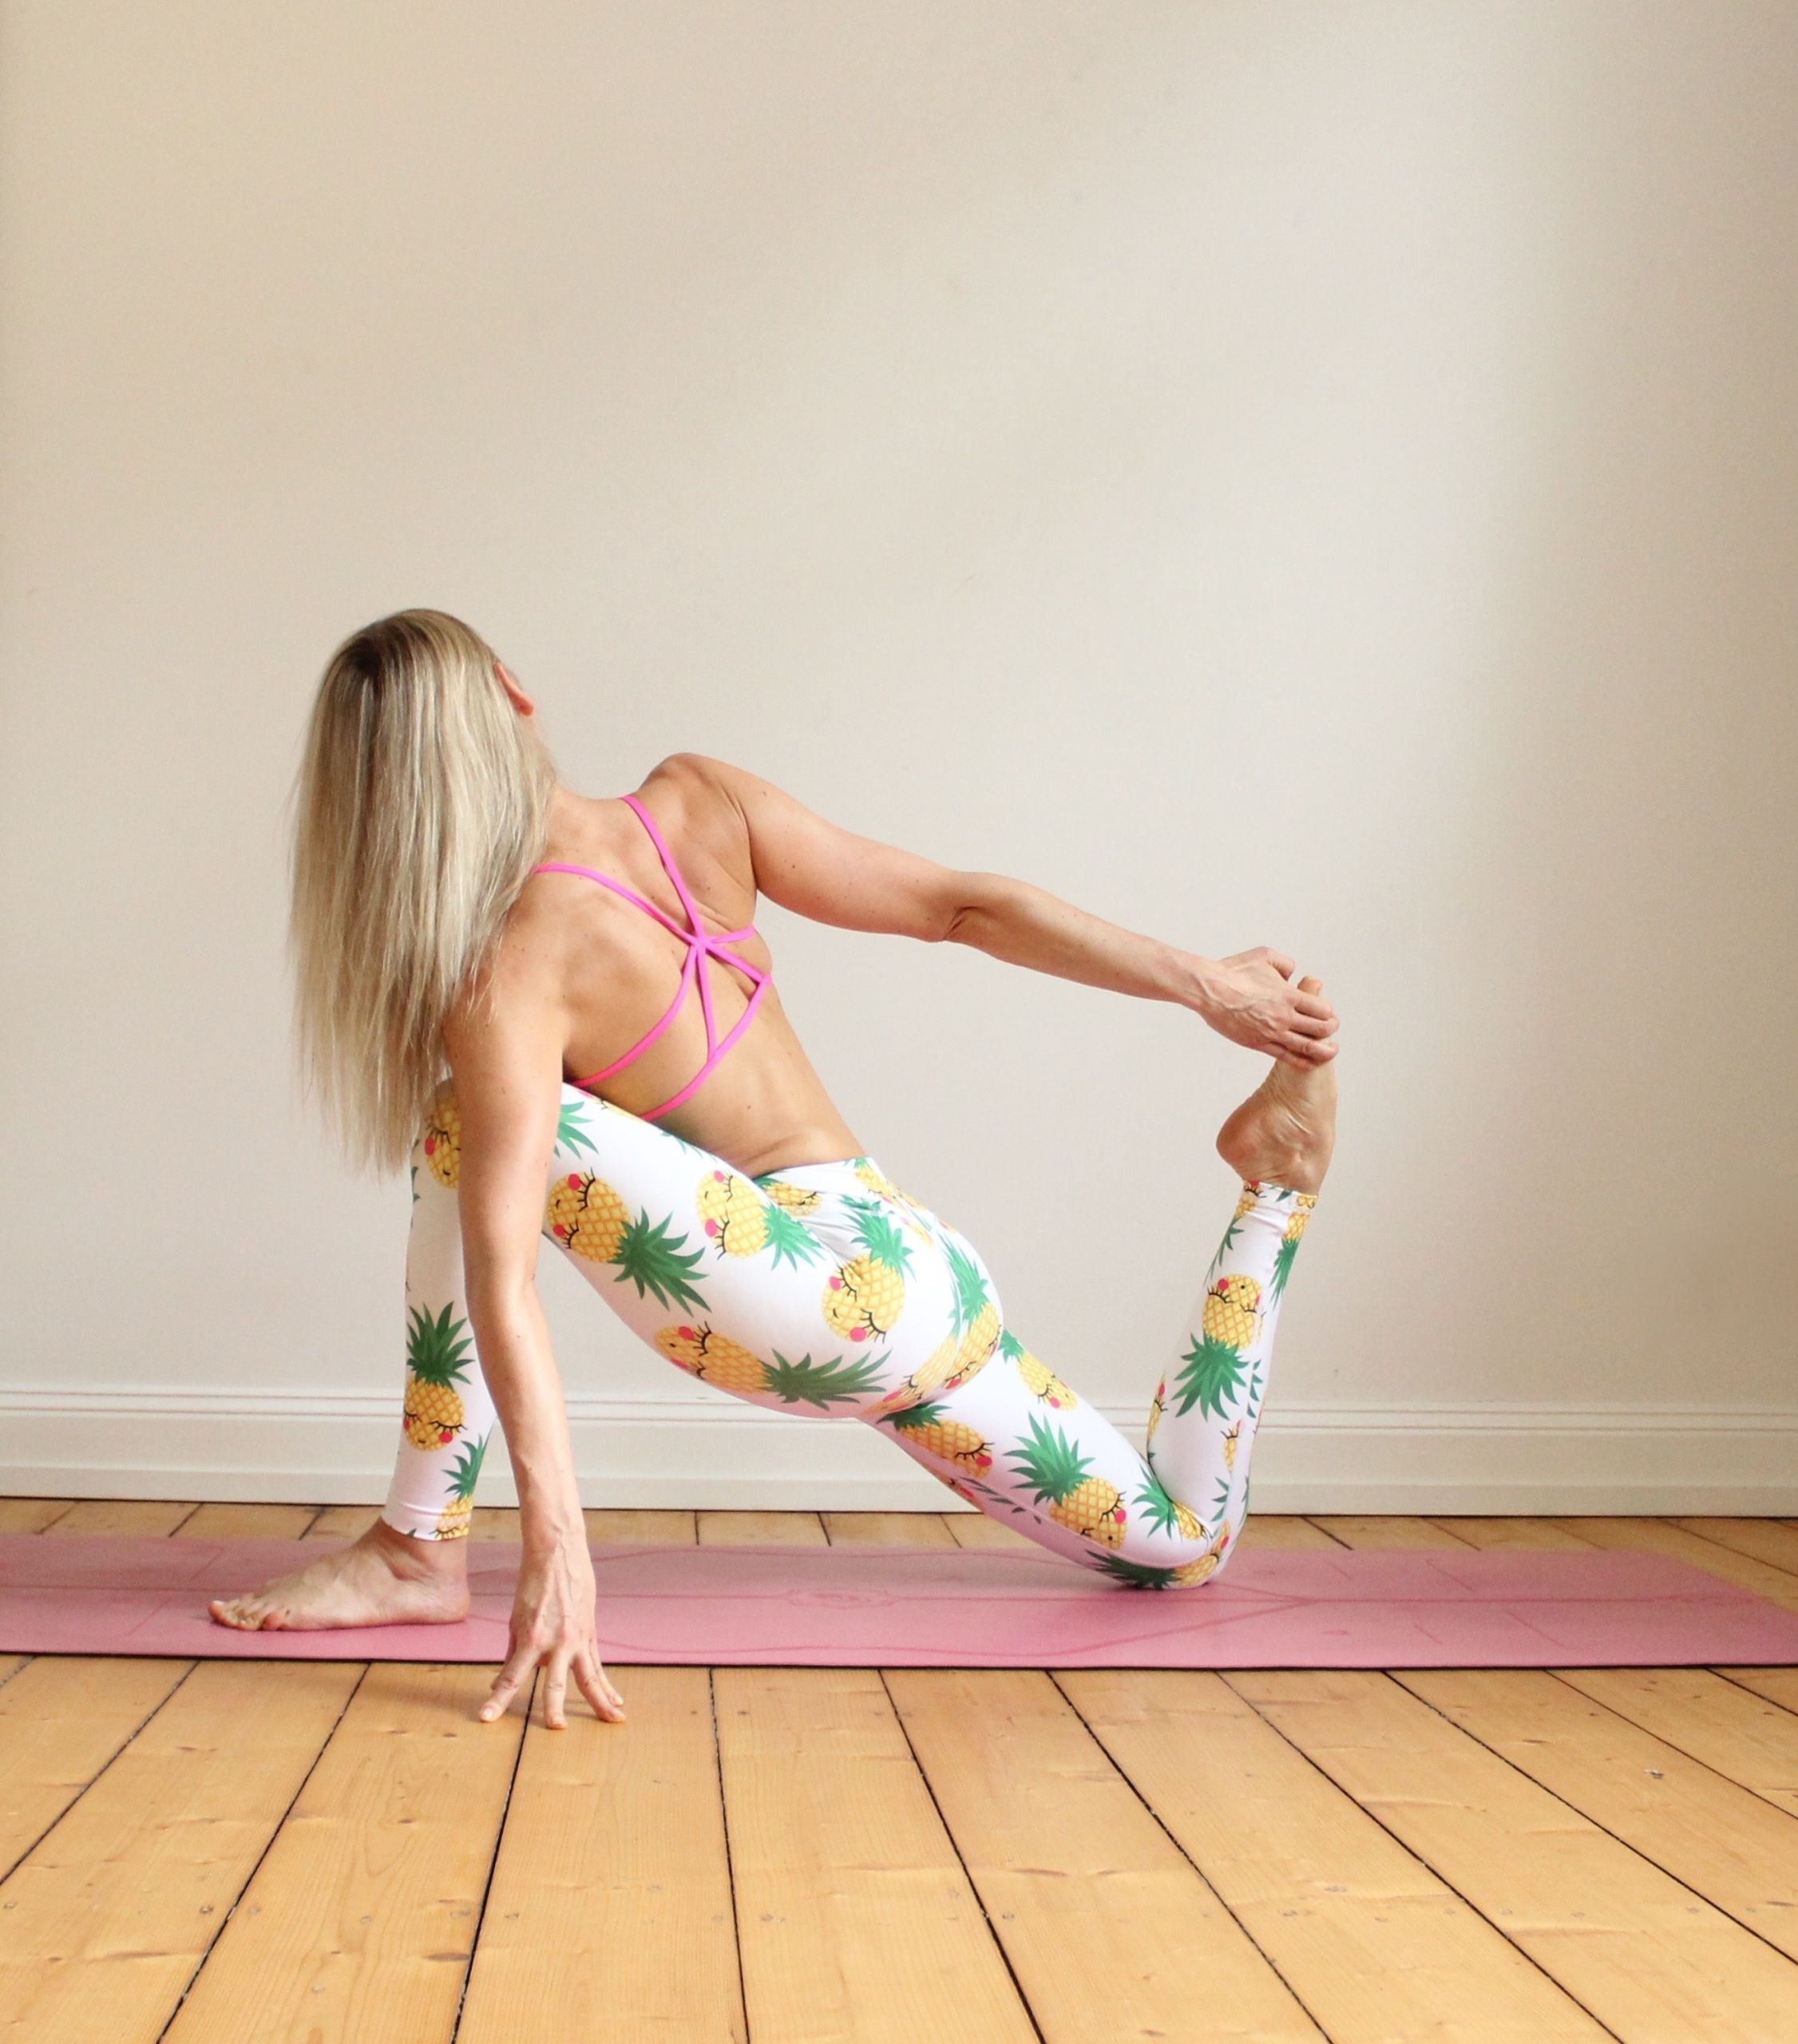 Love Fitness Pineapple Leggings: 27% Spandex 73% PolyesterVery Stretchable With GussetQuick